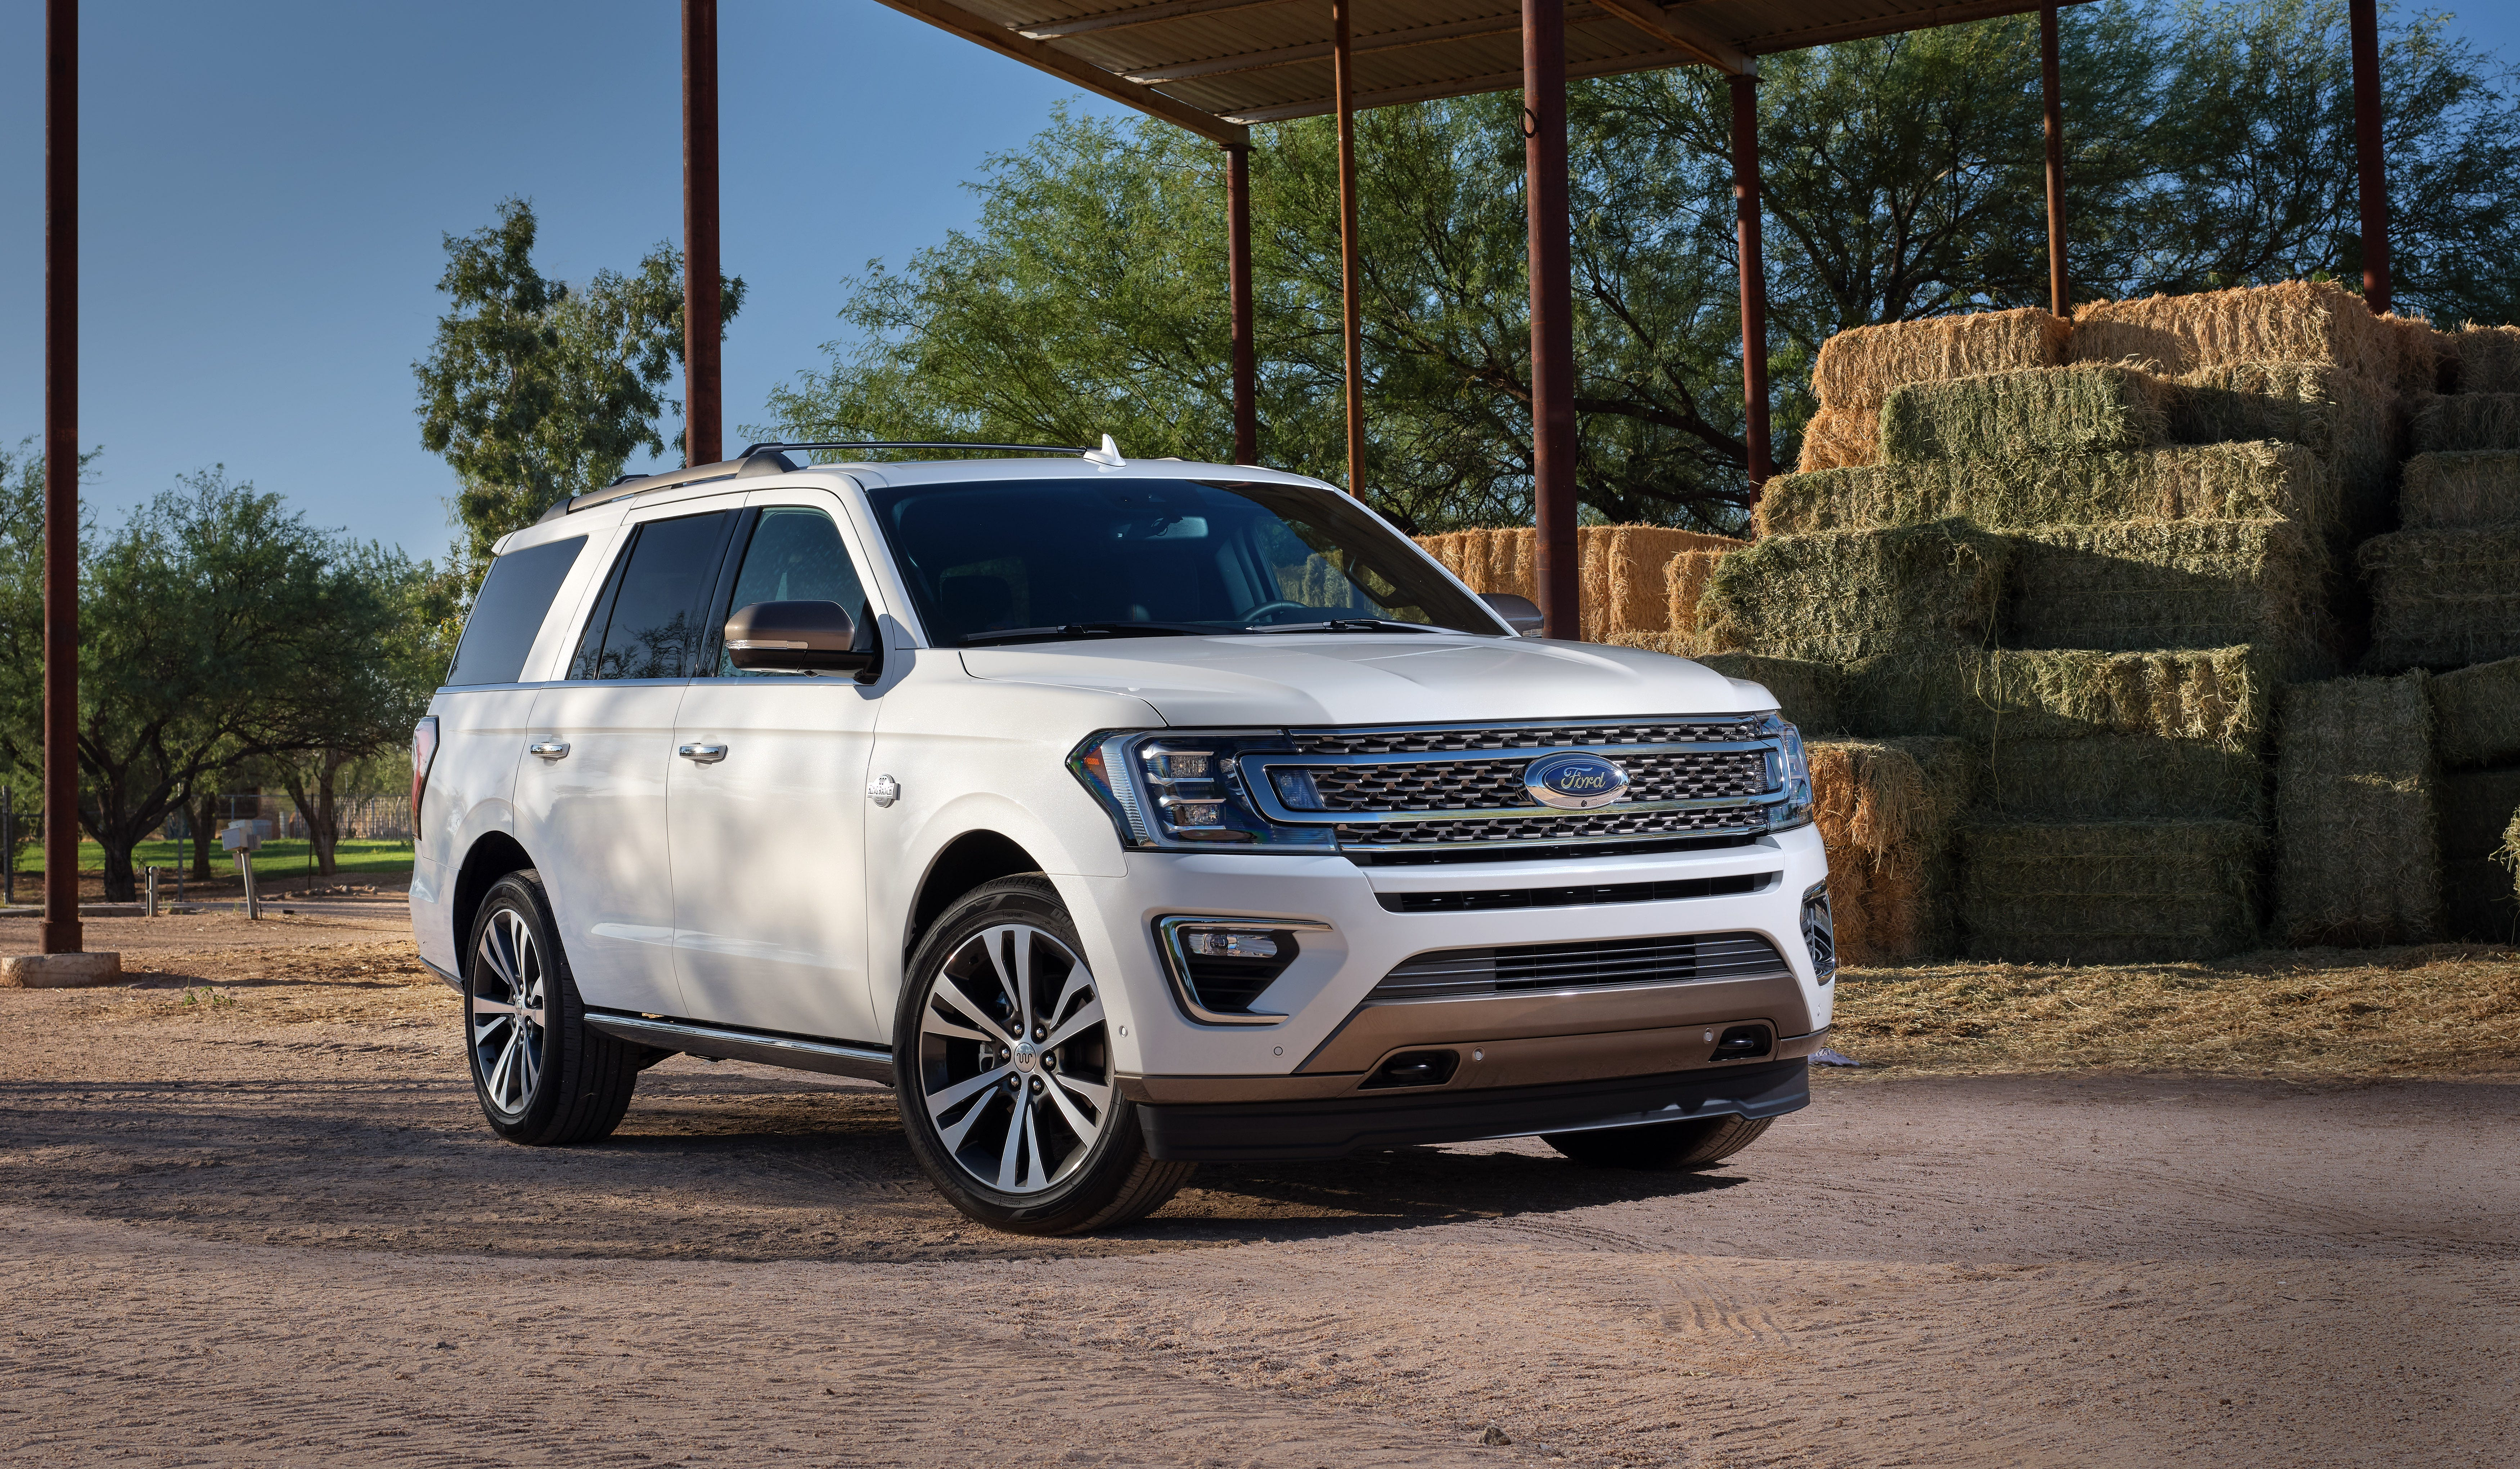 Ford Expedition King Ranch Luxury Suv Is Revived As 2020 Model